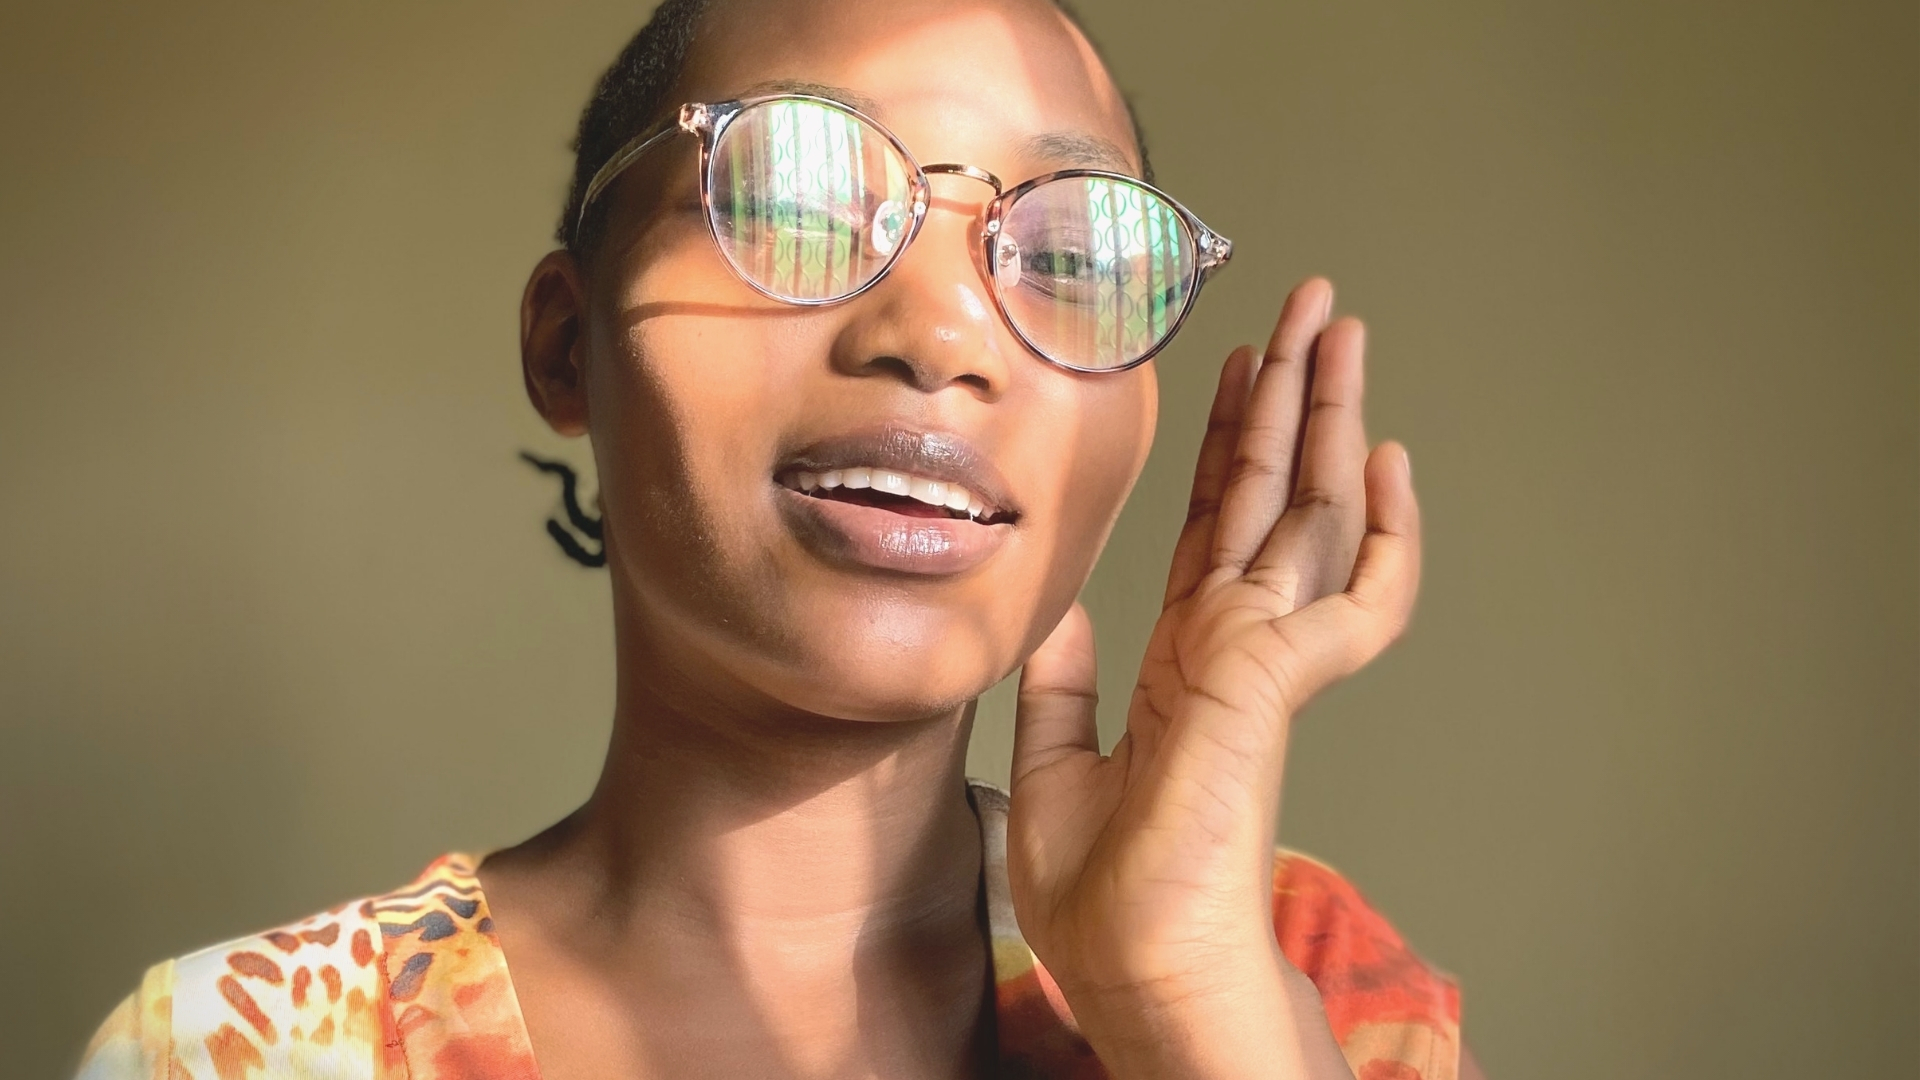 African Woman speaking - do I have to speak in tongues to be spiritual?